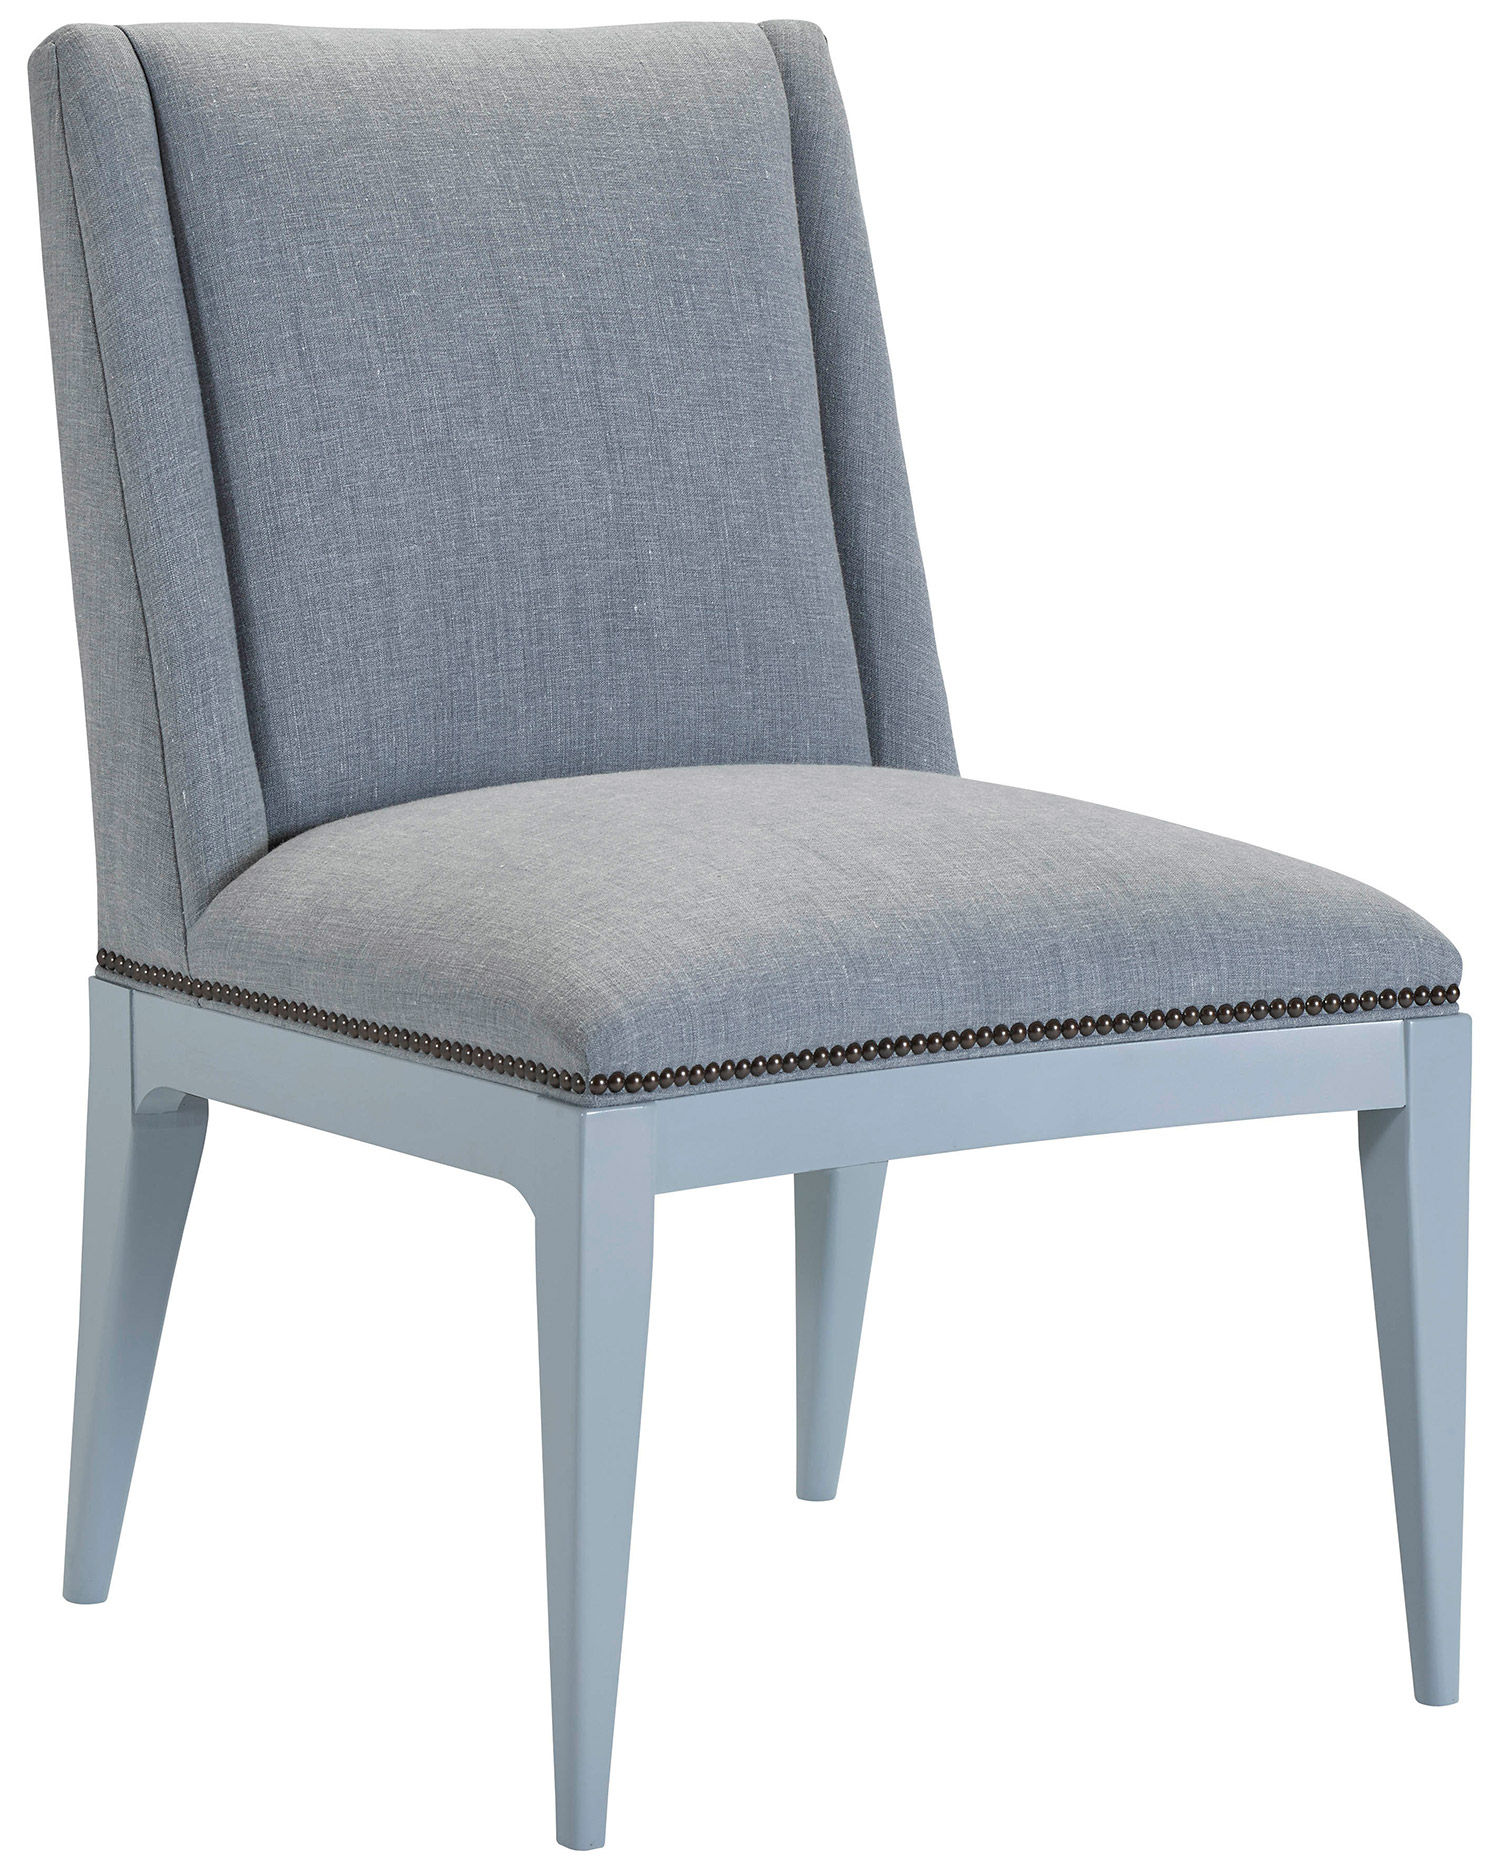 HABLE-HICKORY-TATE-CHAIR.jpg